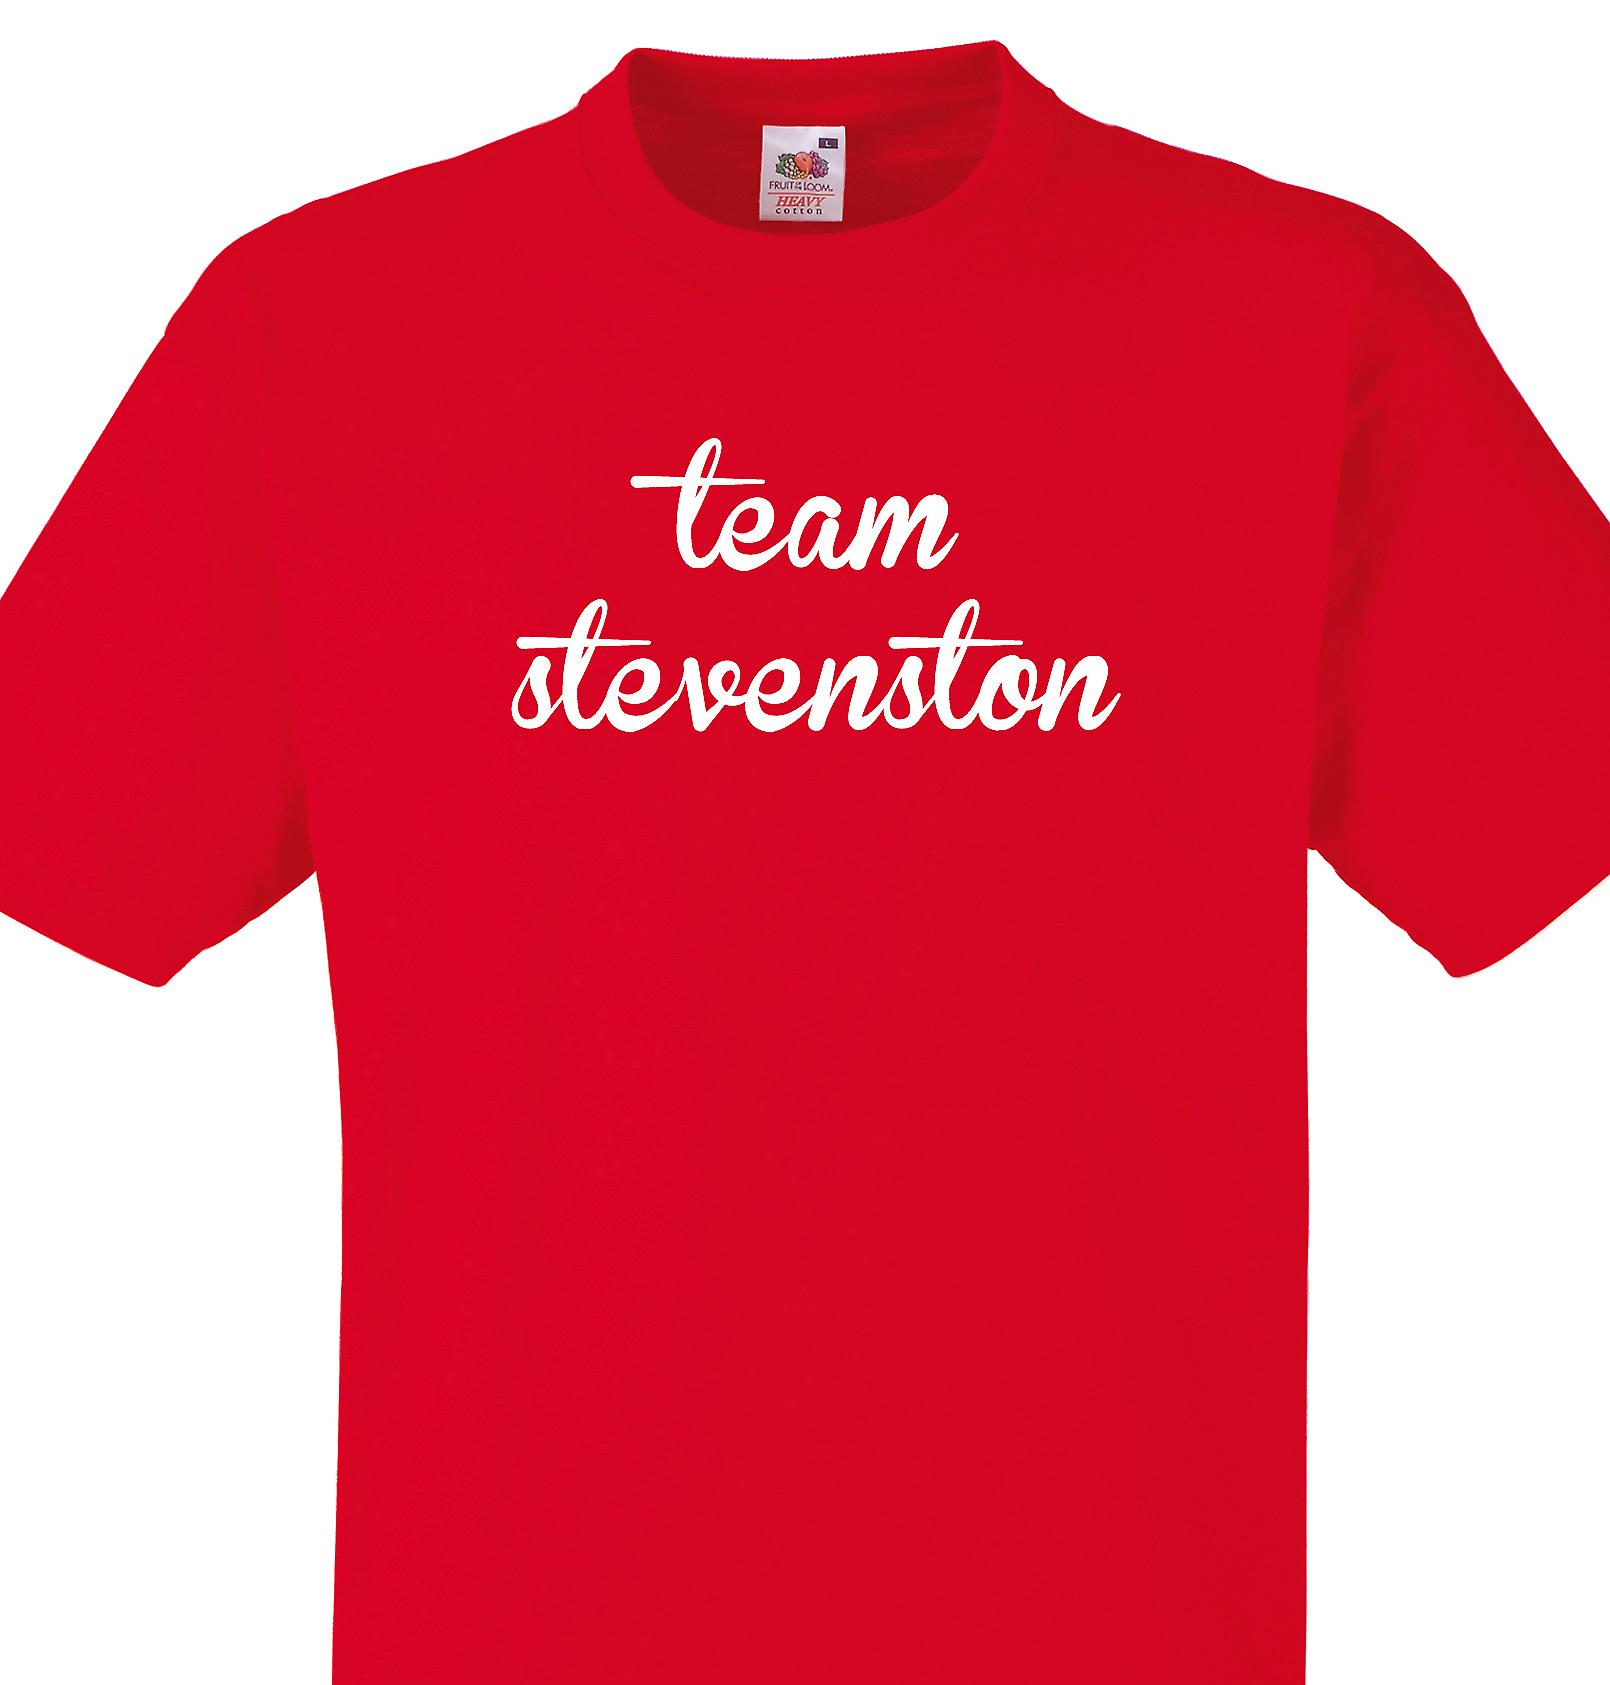 Team Stevenston Red T shirt